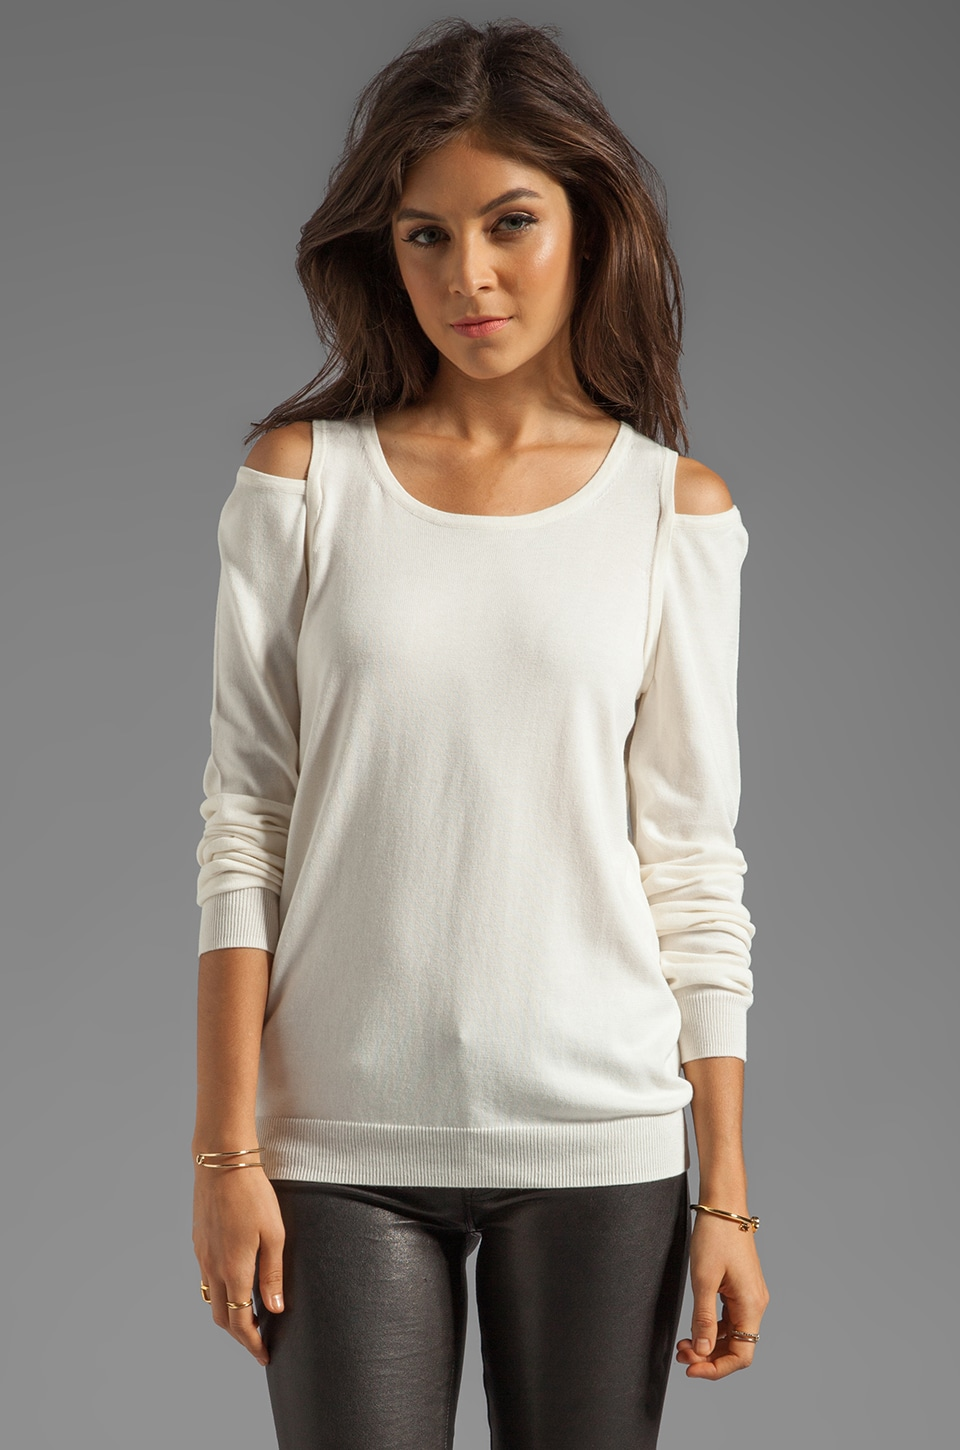 Tibi Basic Cut Out Knit Sweater in Almond